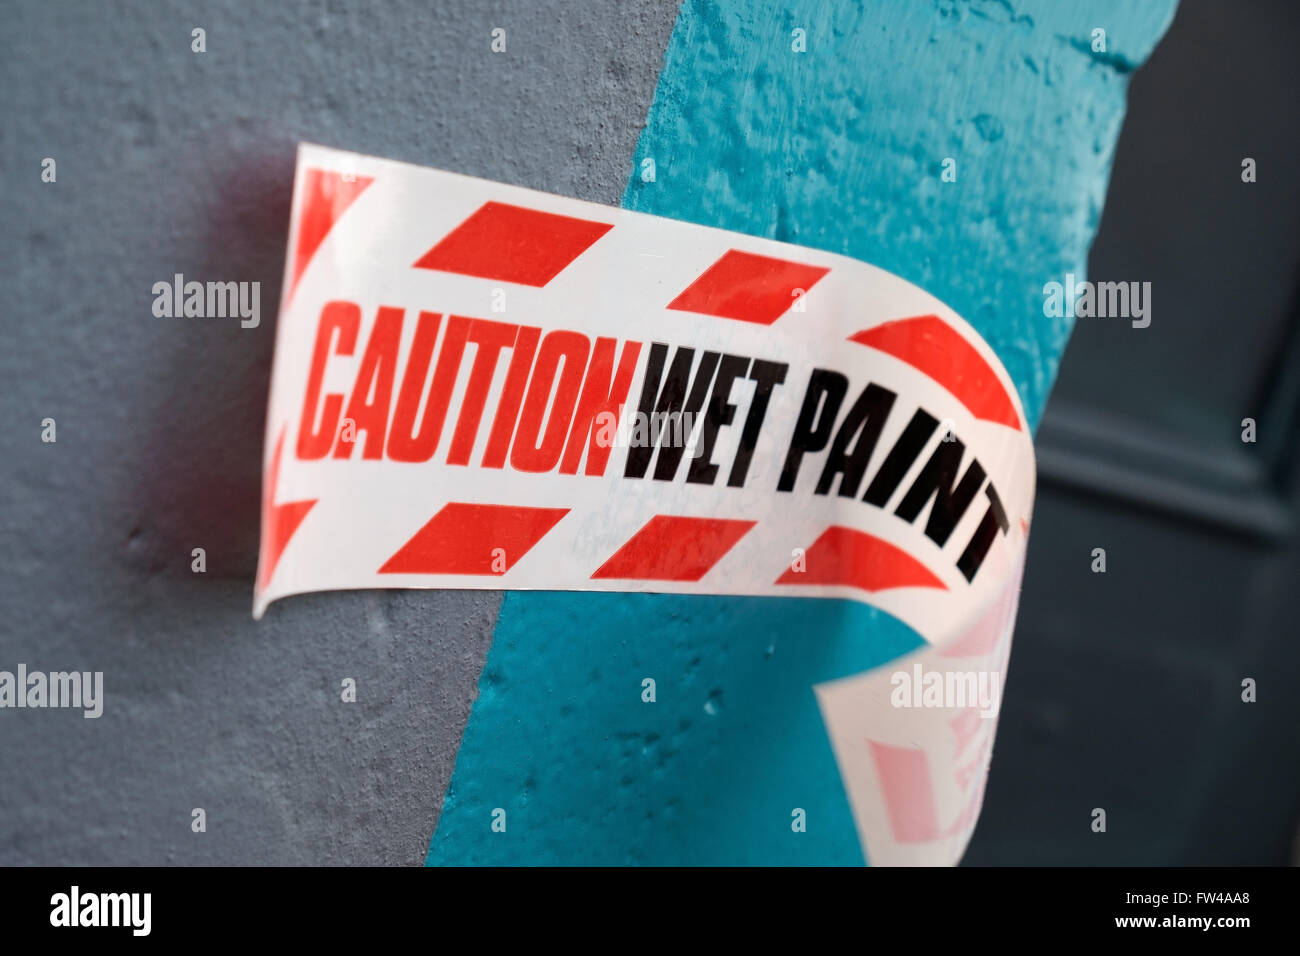 A caution wet paint warning notice. - Stock Image